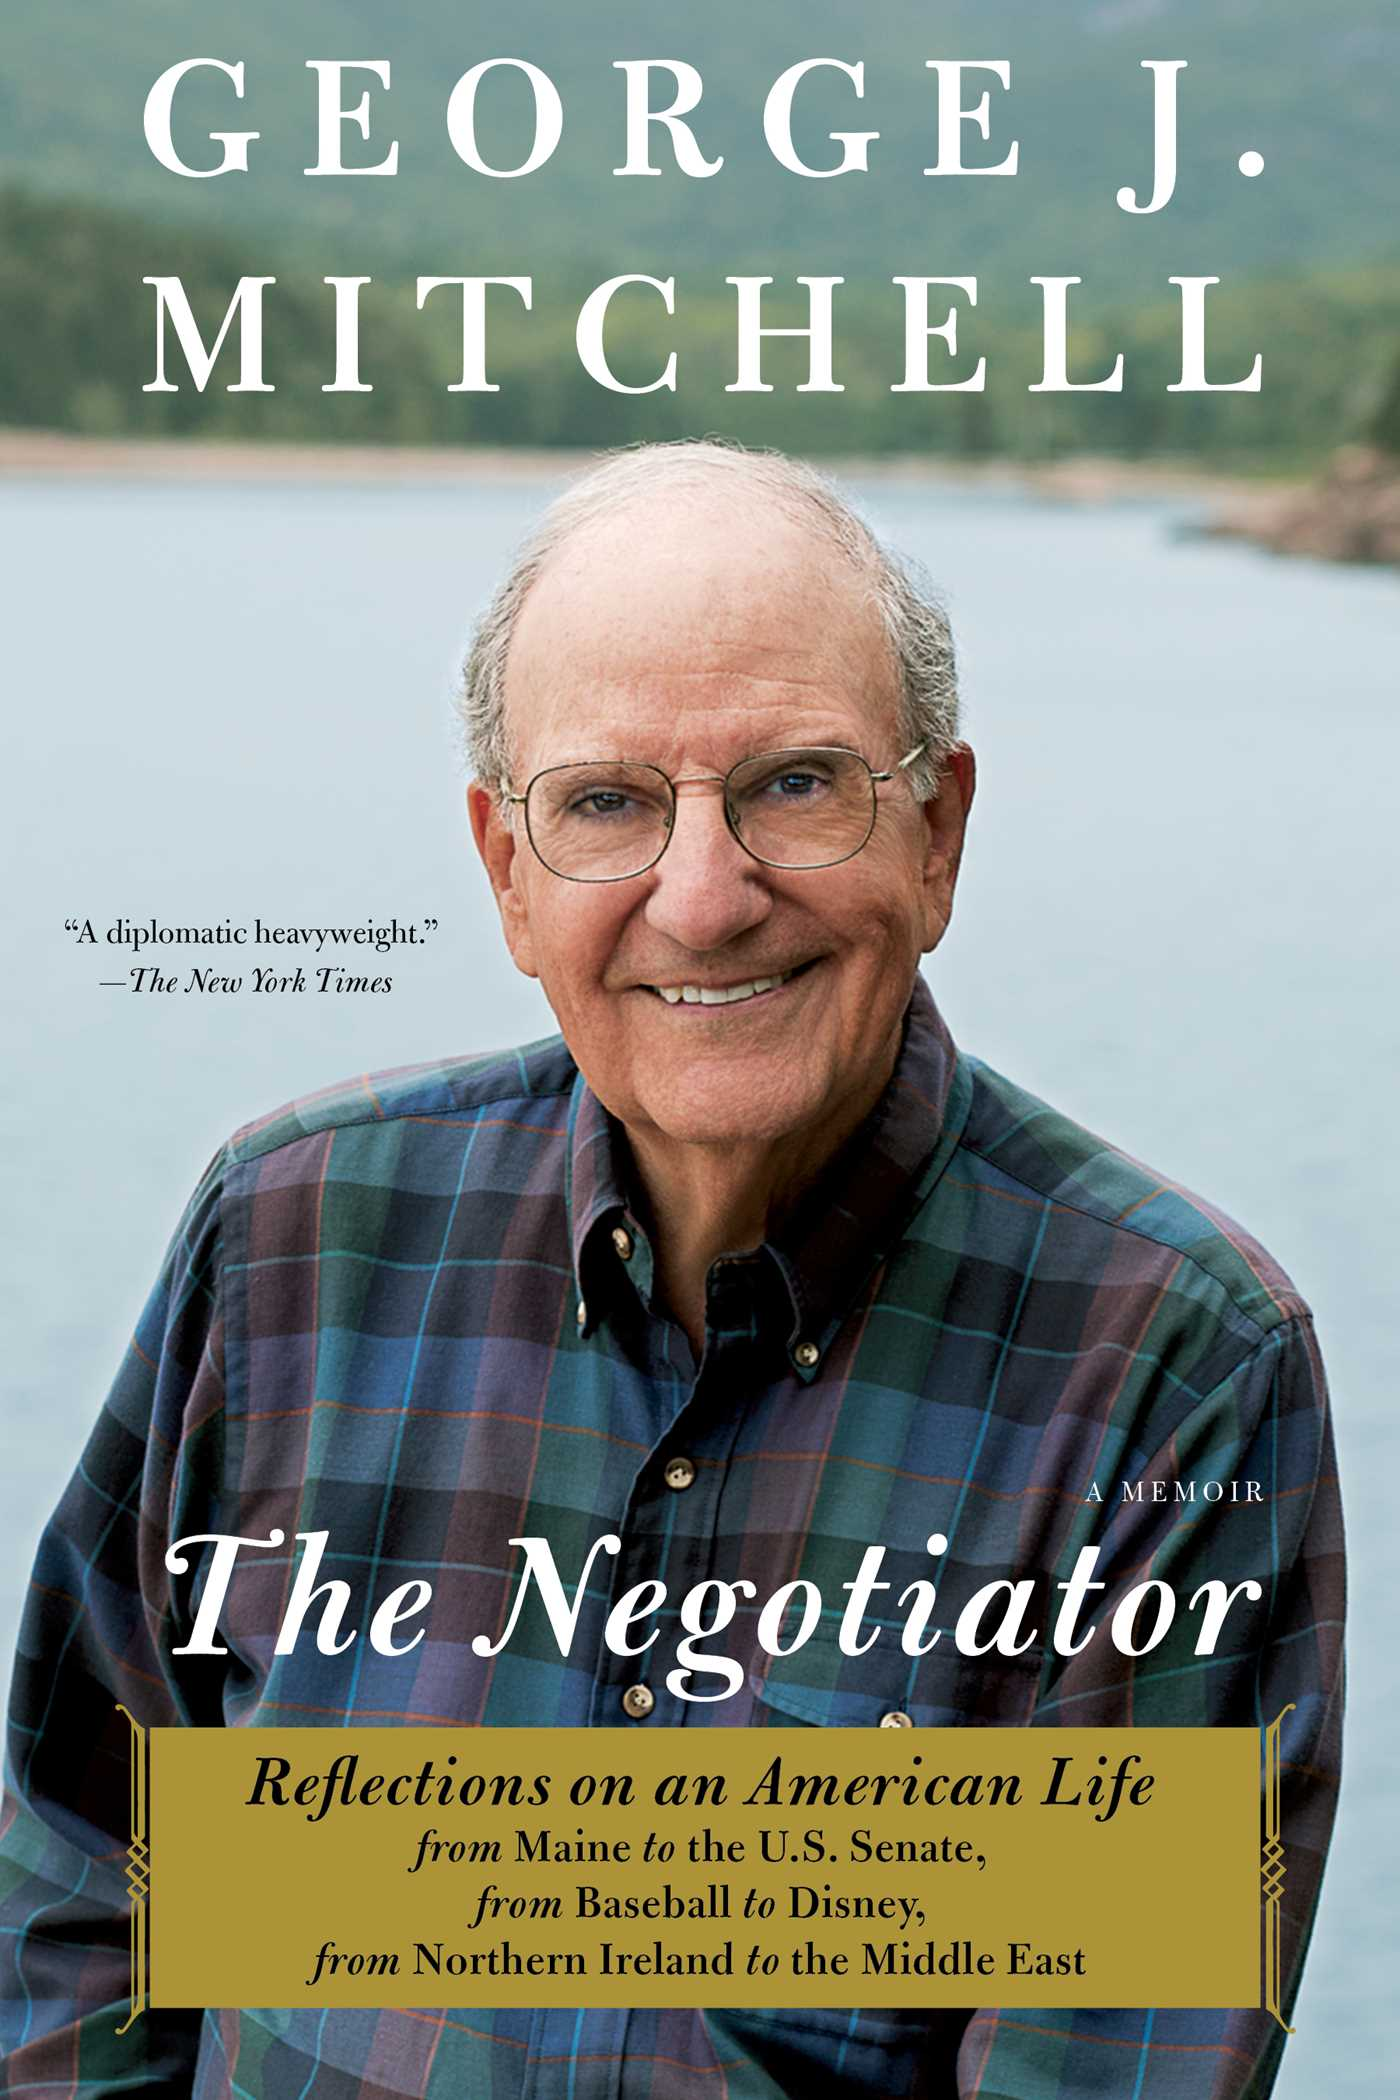 The Honorable George Mitchell to discuss turbulence in the Middle East at Marquette on Oct. 6